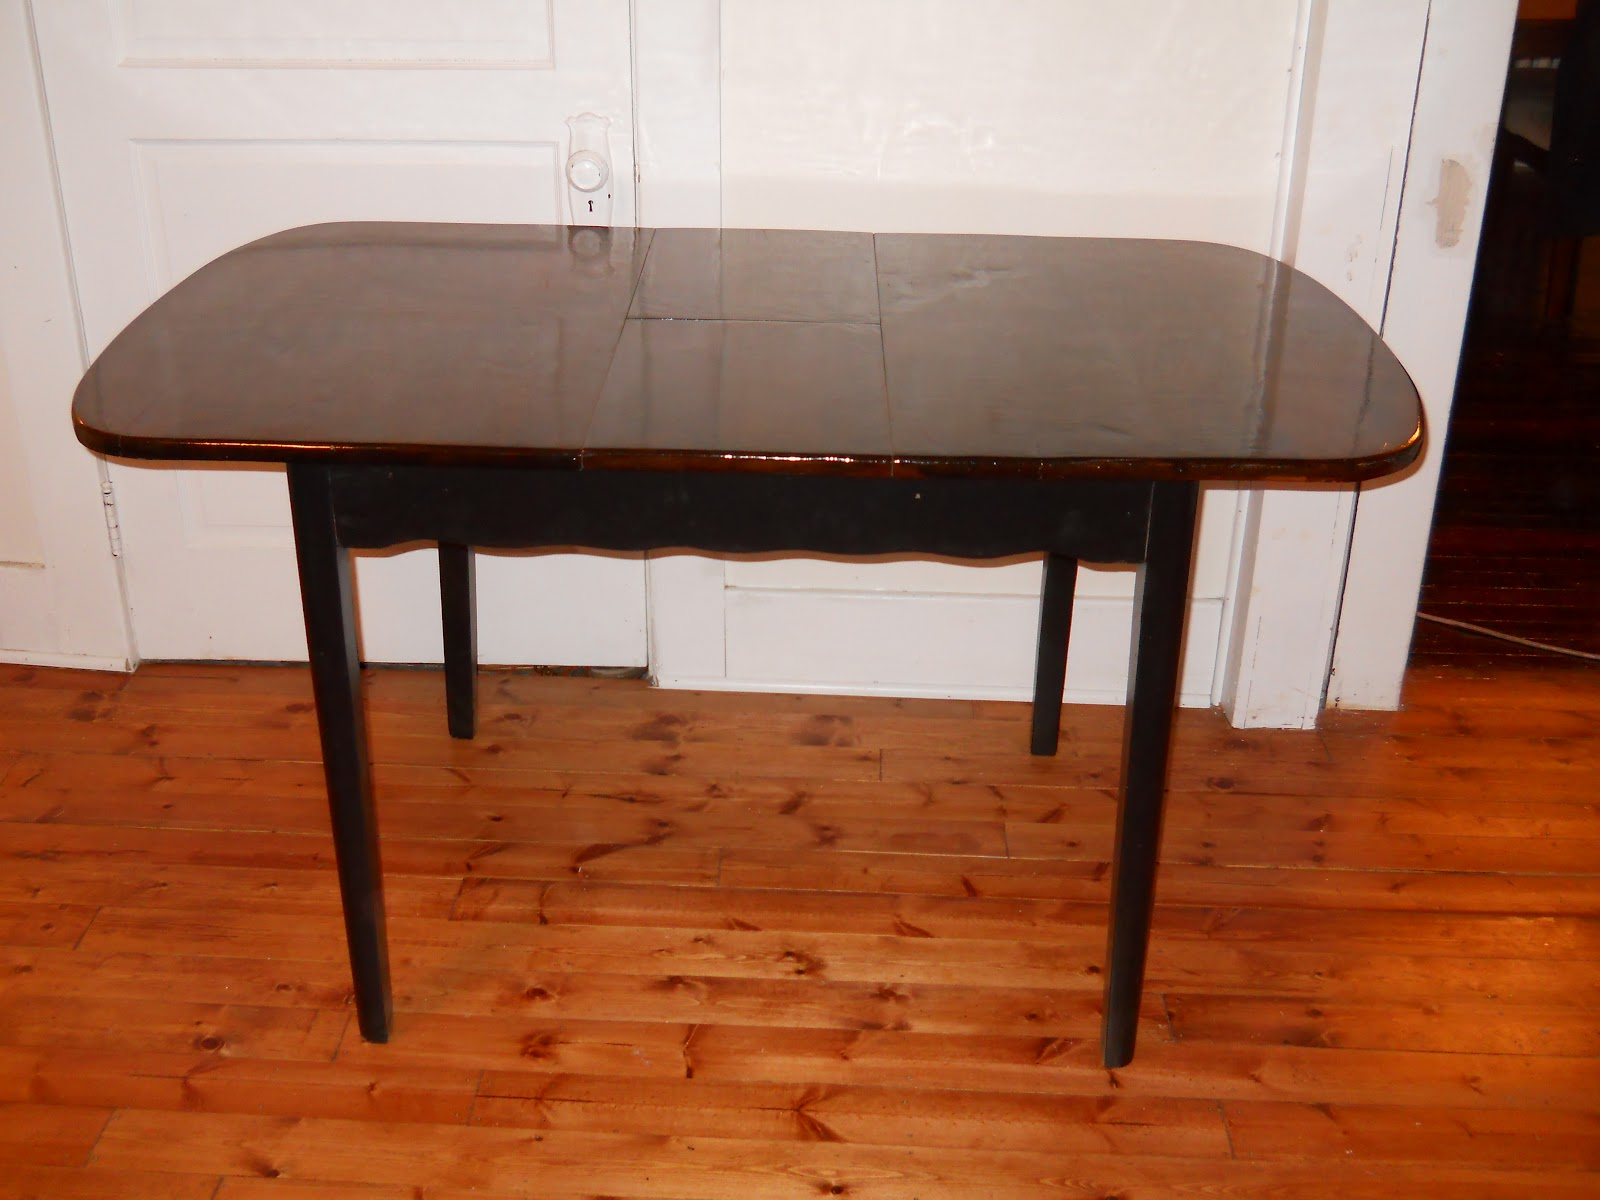 Heir and space a cute vintage dining table for Cute dining table